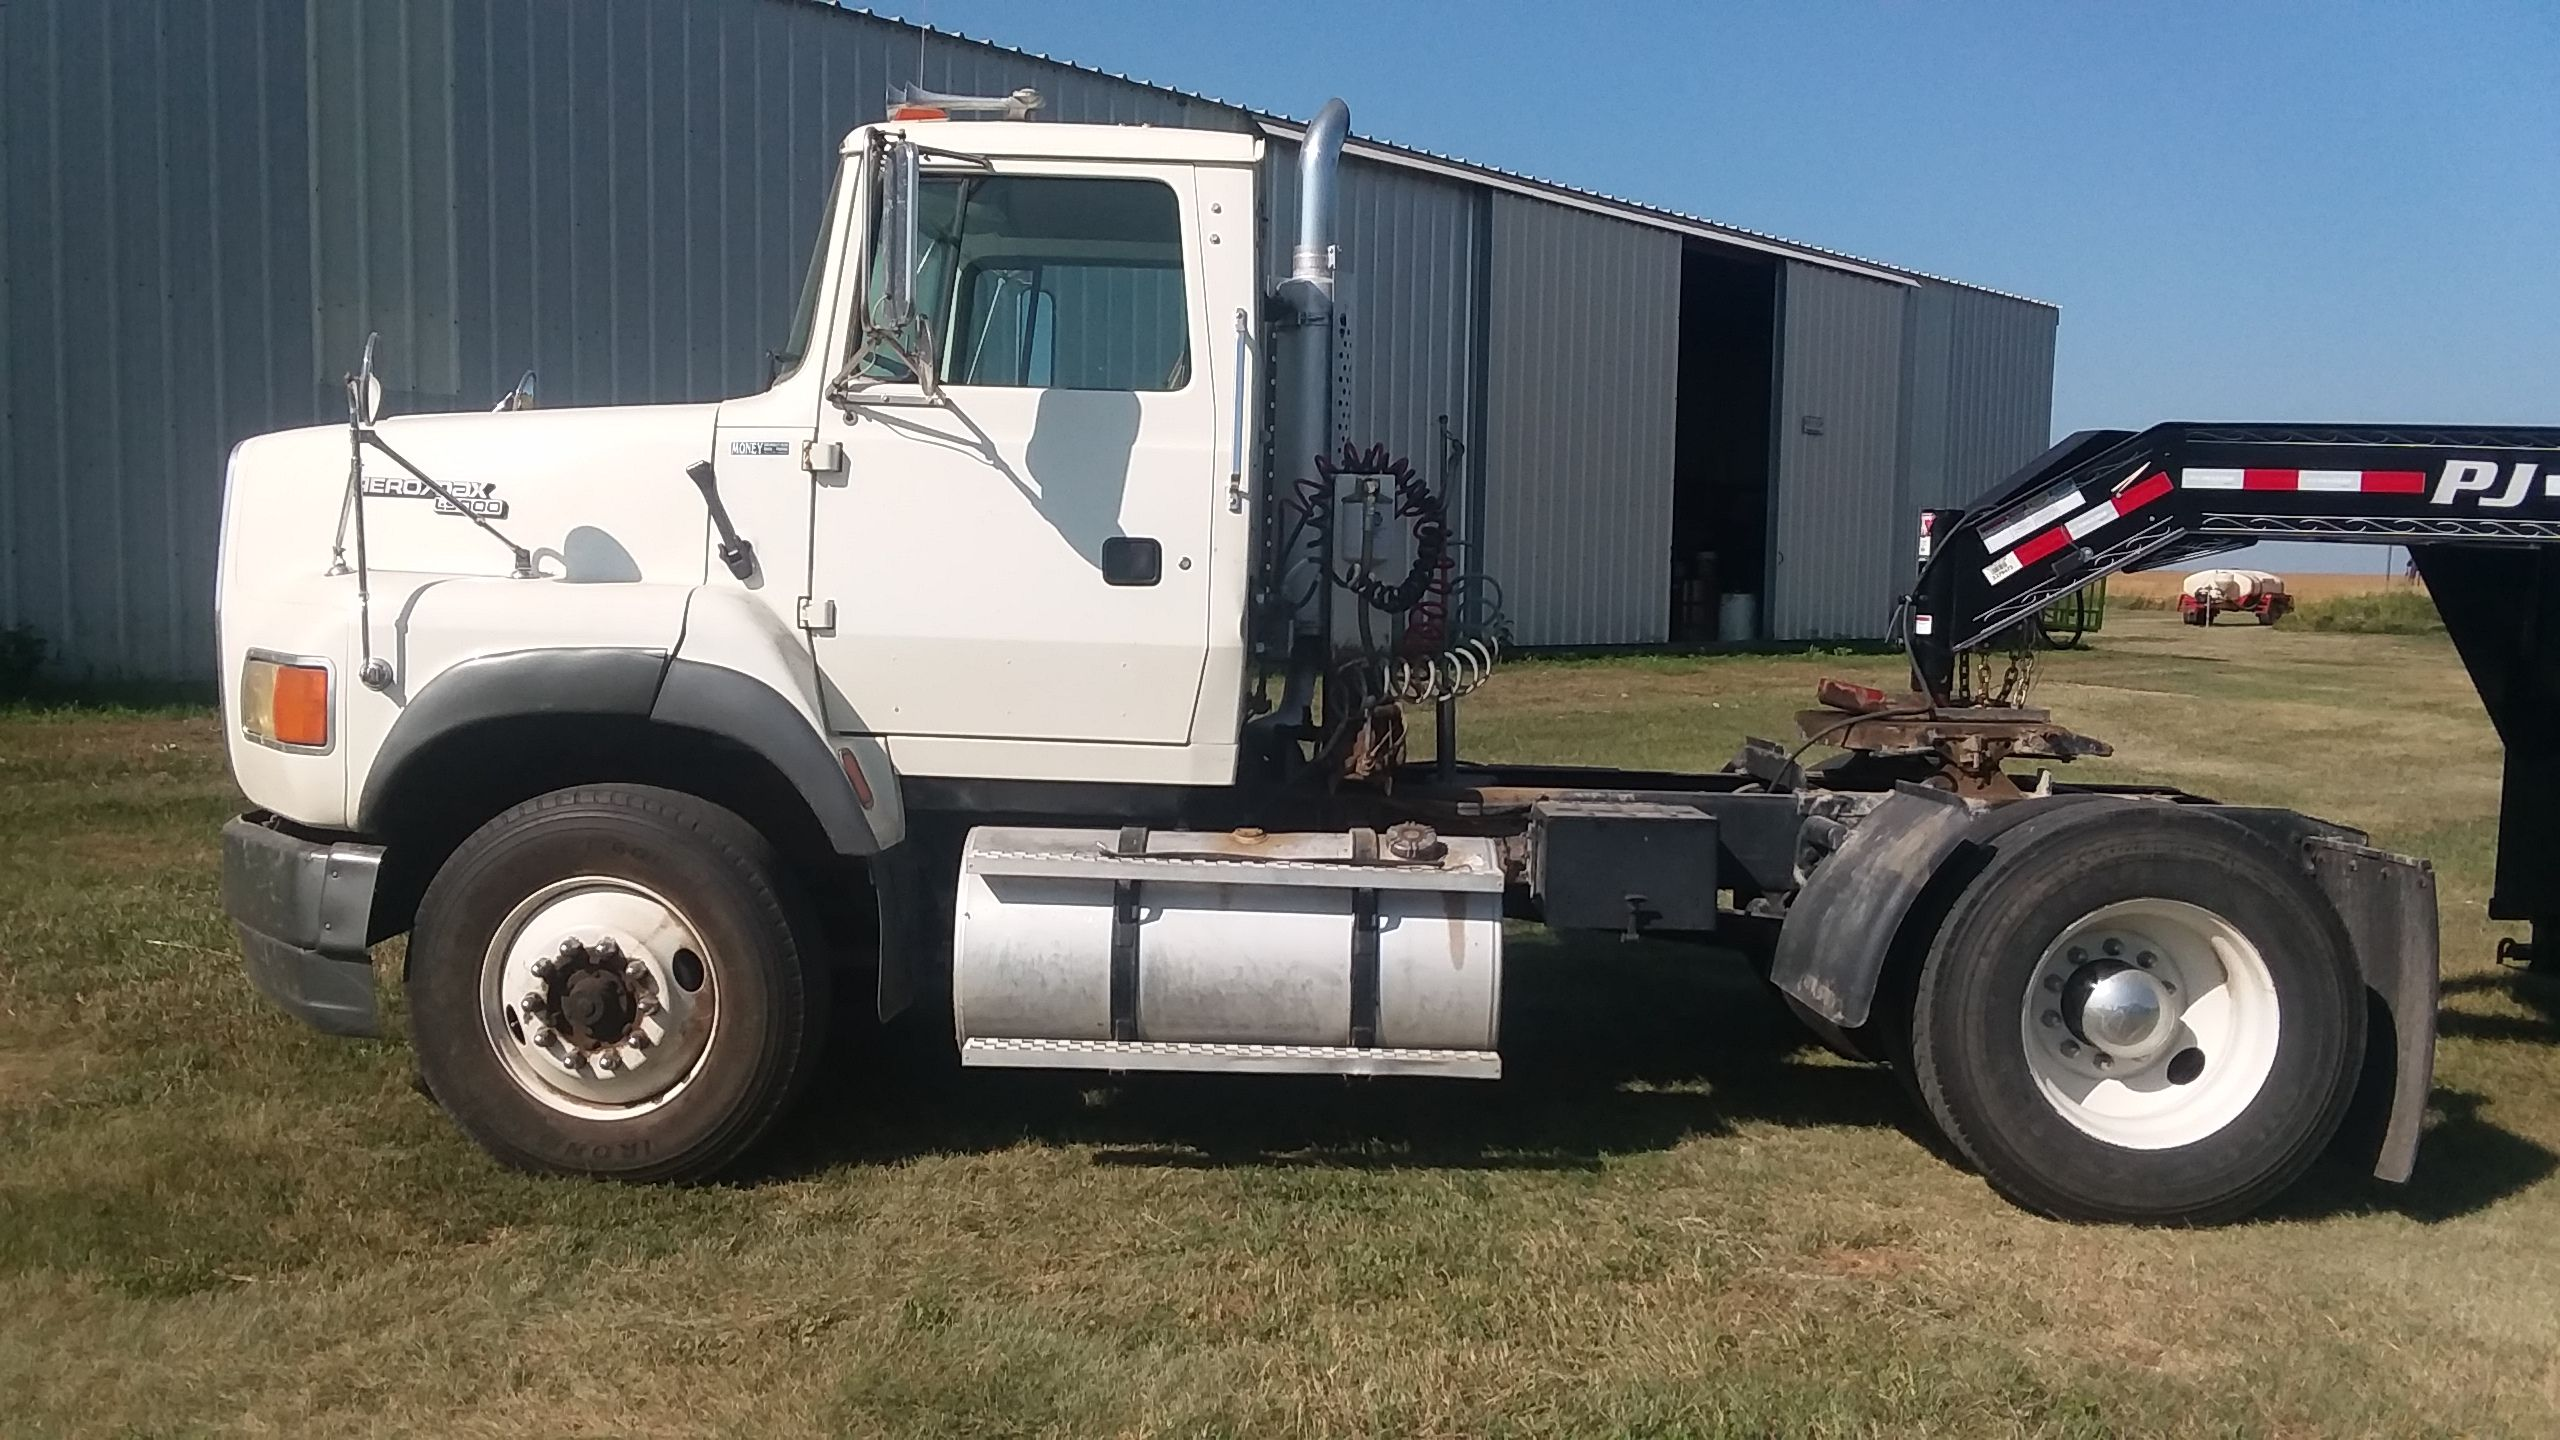 Item 83 in FARM MACHINERY AUCTION gallery